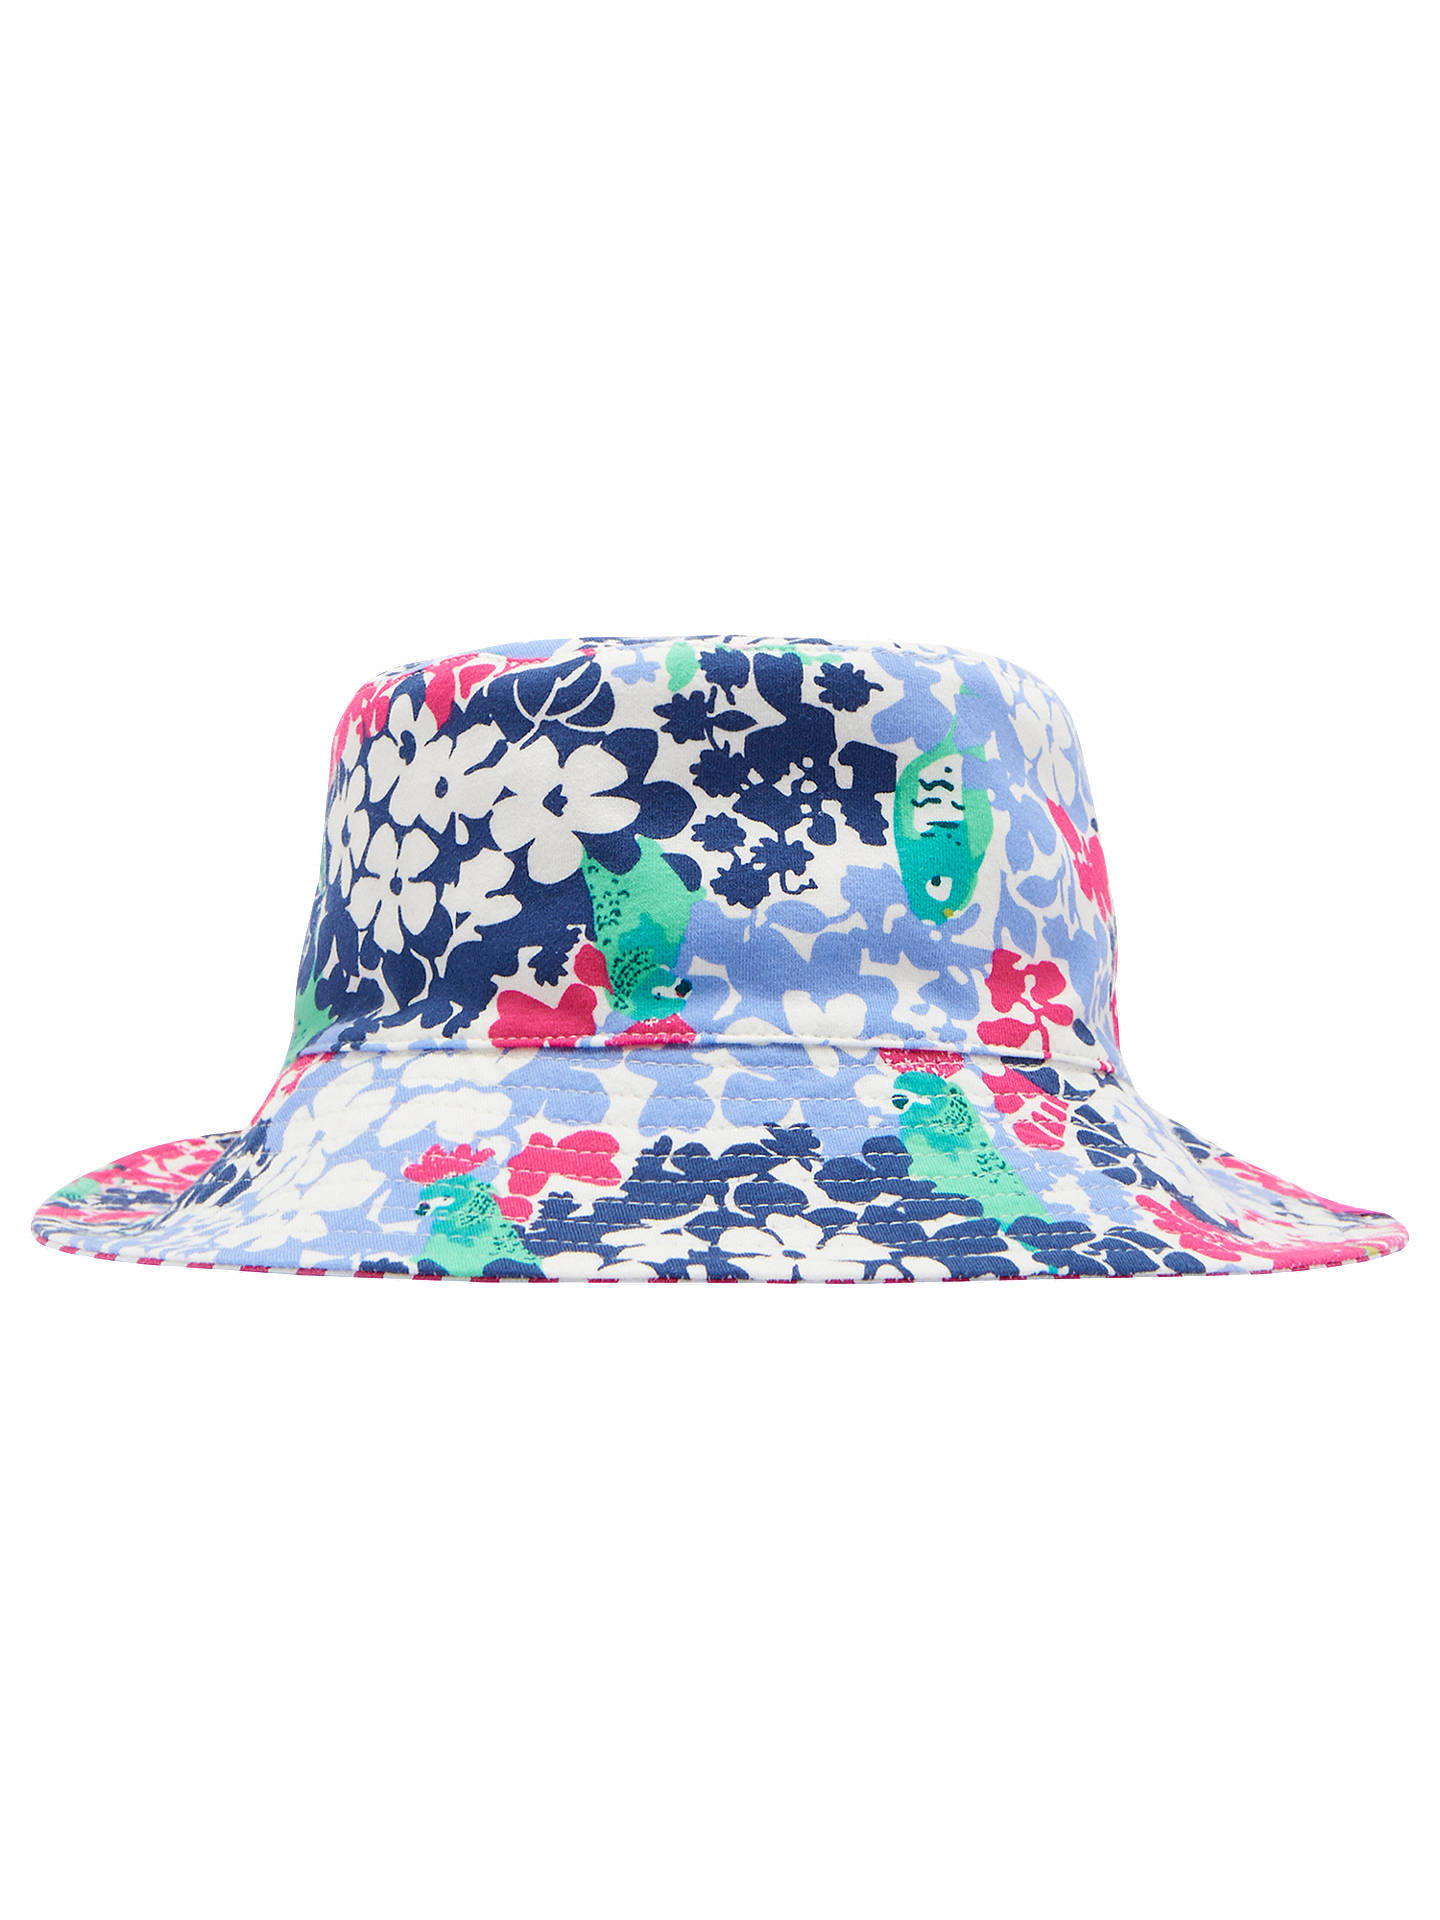 7652c177354 BuyLittle Joules Children s Mirabelle Bow Fold Away Hat